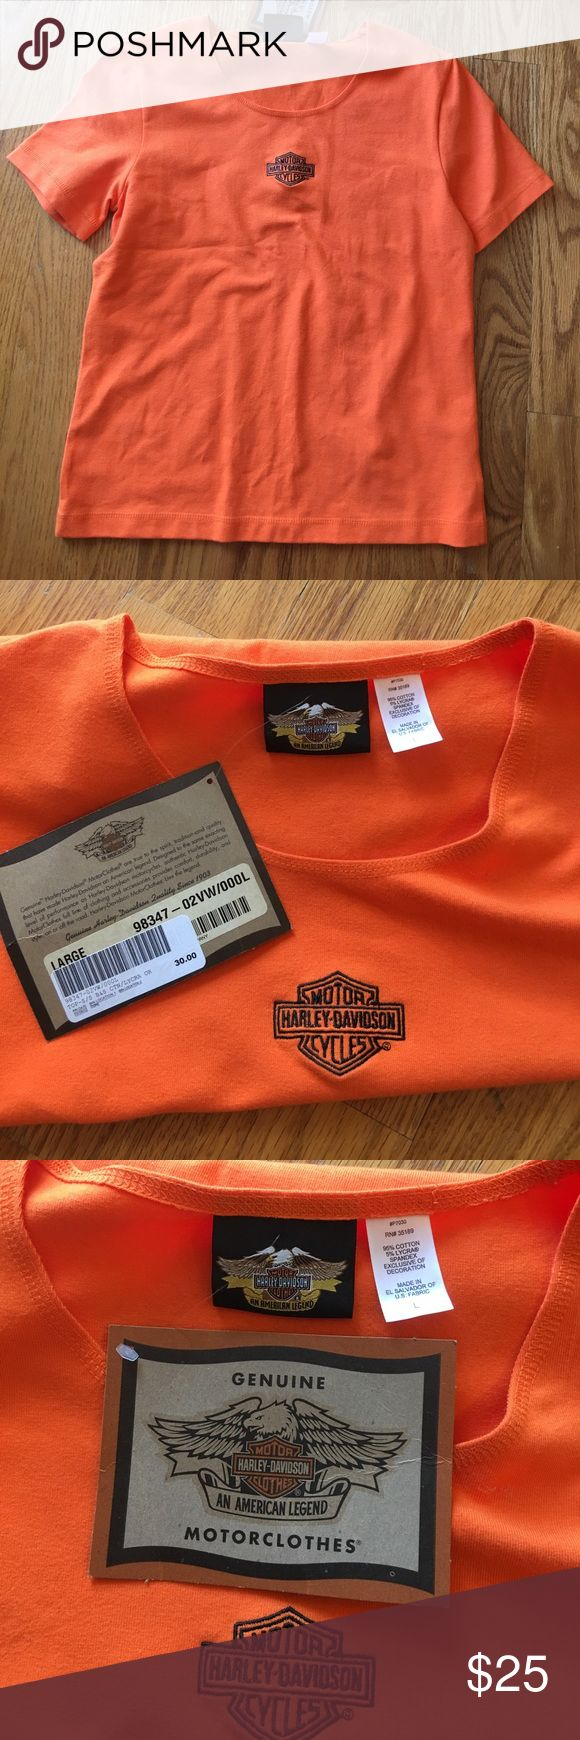 NWT Harley-Davidson woman's short sleeve top NWT woman's Harley-Davidson orange short sleeve top.  Size Large. Smoke free and pet free home. Harley-Davidson Tops Tees - Short Sleeve